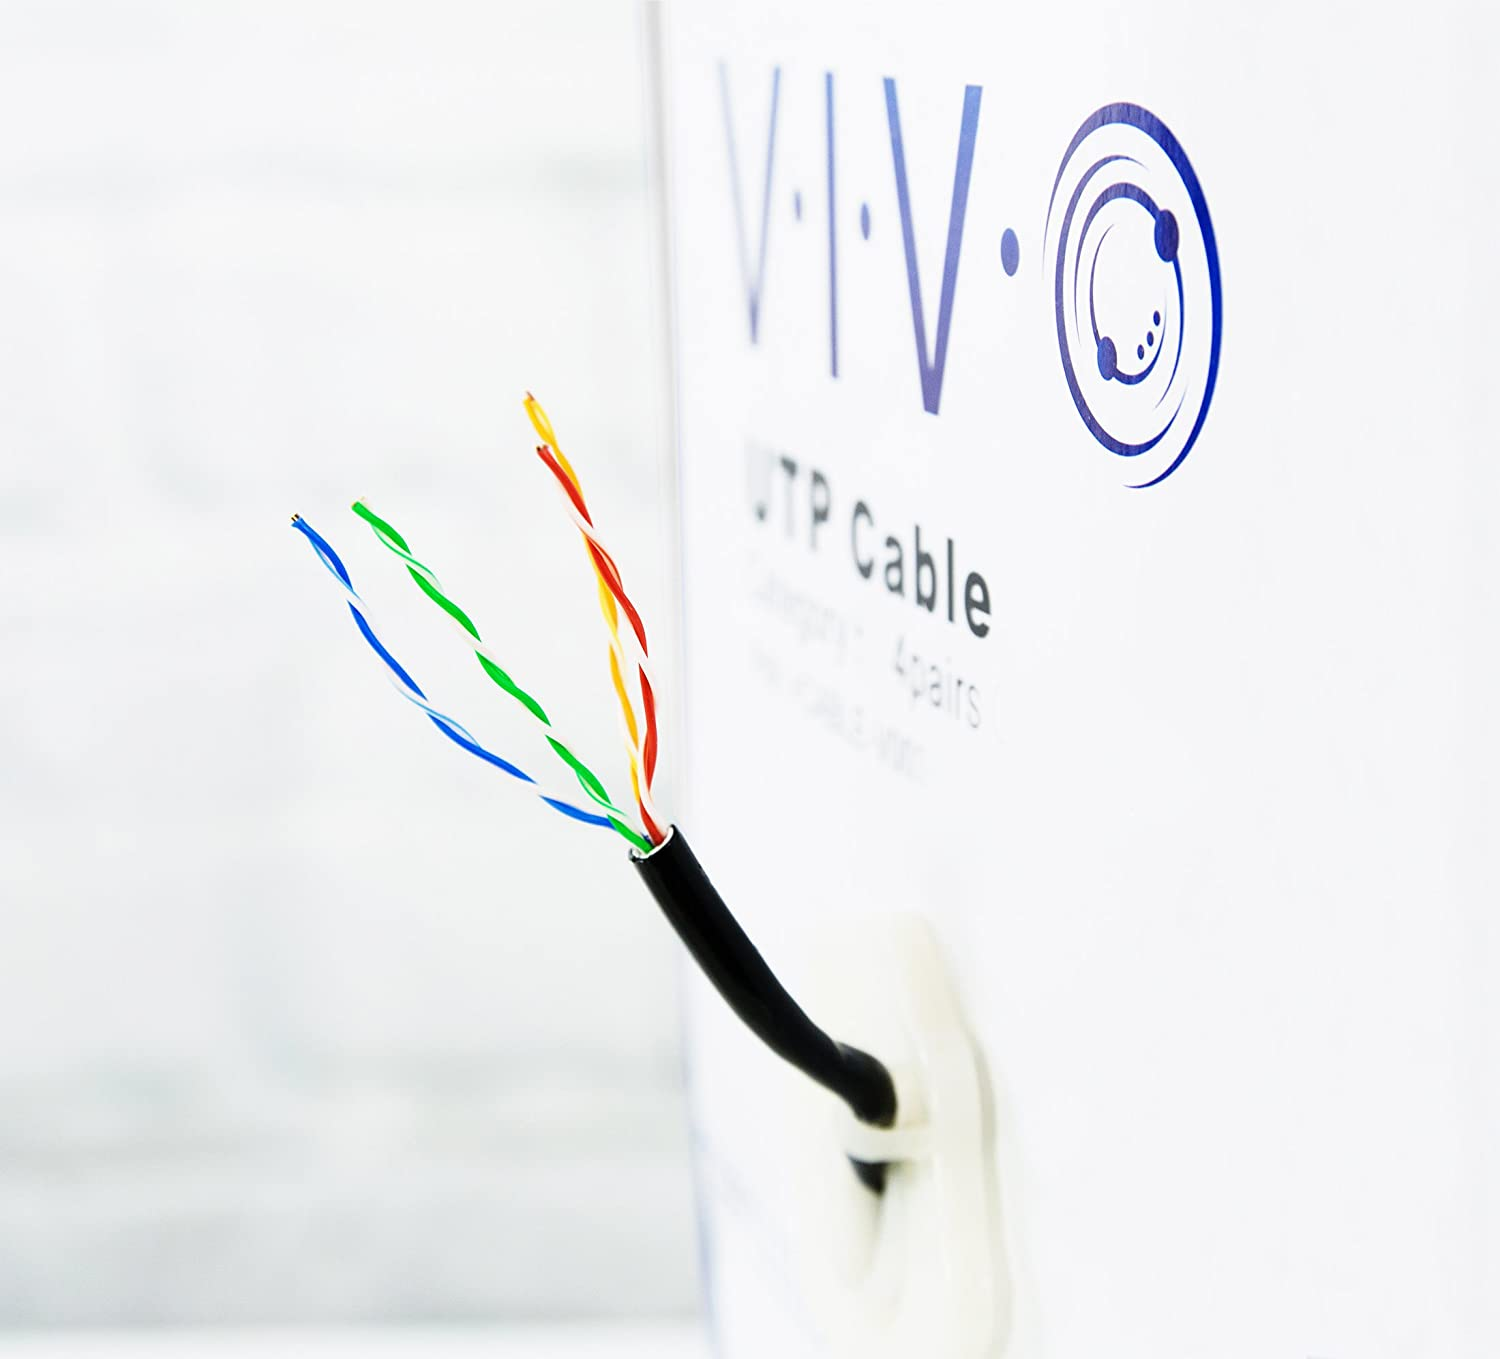 Vivo New 1000 Ft Cat6 Ethernet Cable Wire 1000ft Cat 6 Pins And Wires Labelled For Power Over Waterproof Outdoor Direct Burial Underground V007 Computers Accessories